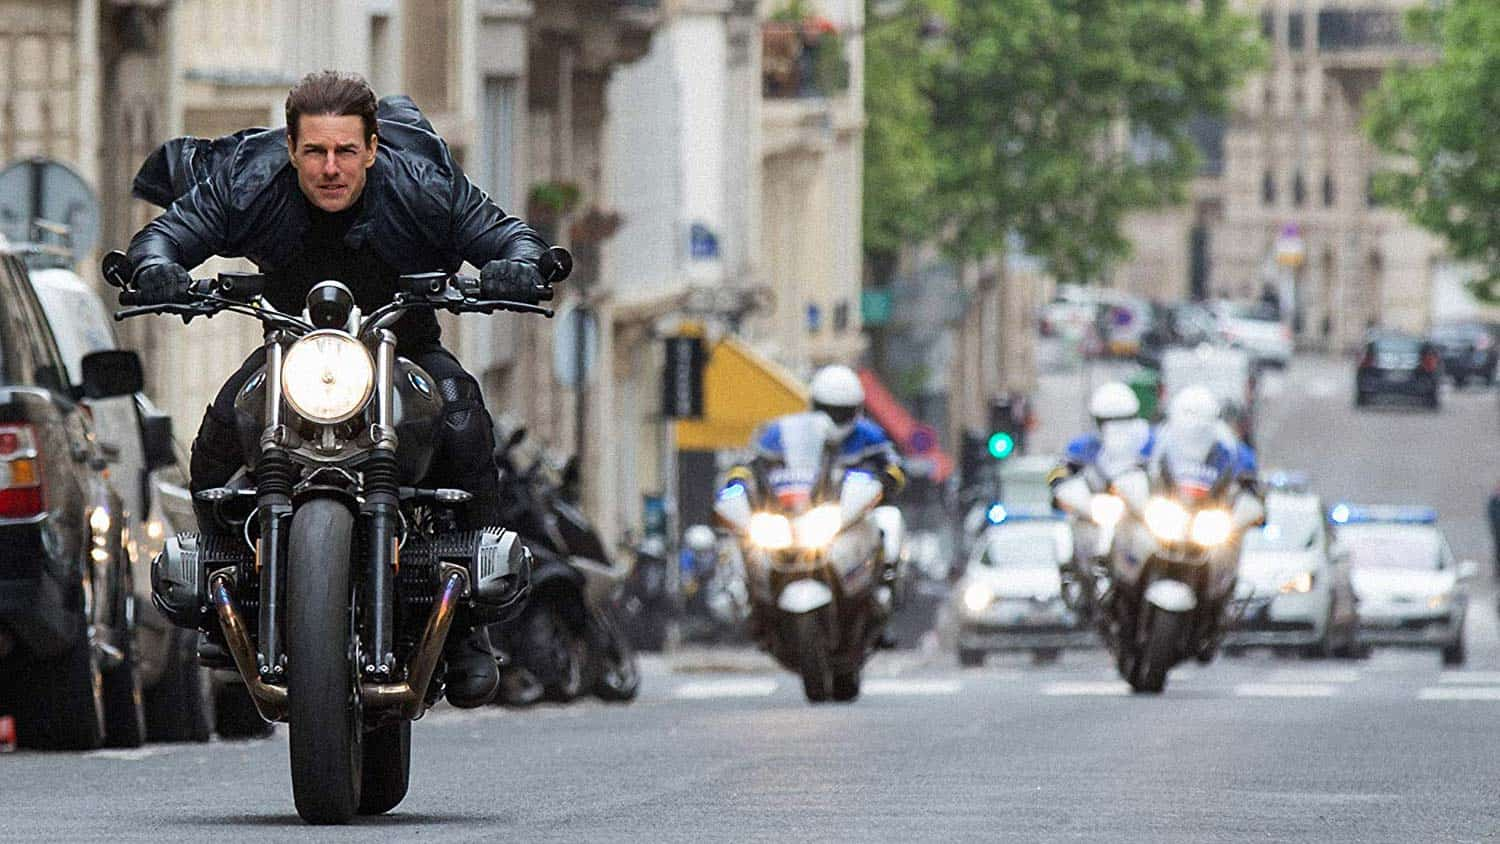 Mission: Impossible – Fallout IMAX 3D Review – Sorry, I Had It In 2D - OC Movie Reviews - Movie Reviews, Movie News, Documentary Reviews, Short Films, Short Film Reviews, Trailers, Movie Trailers, Interviews, film reviews, film news, hollywood, indie films, documentaries